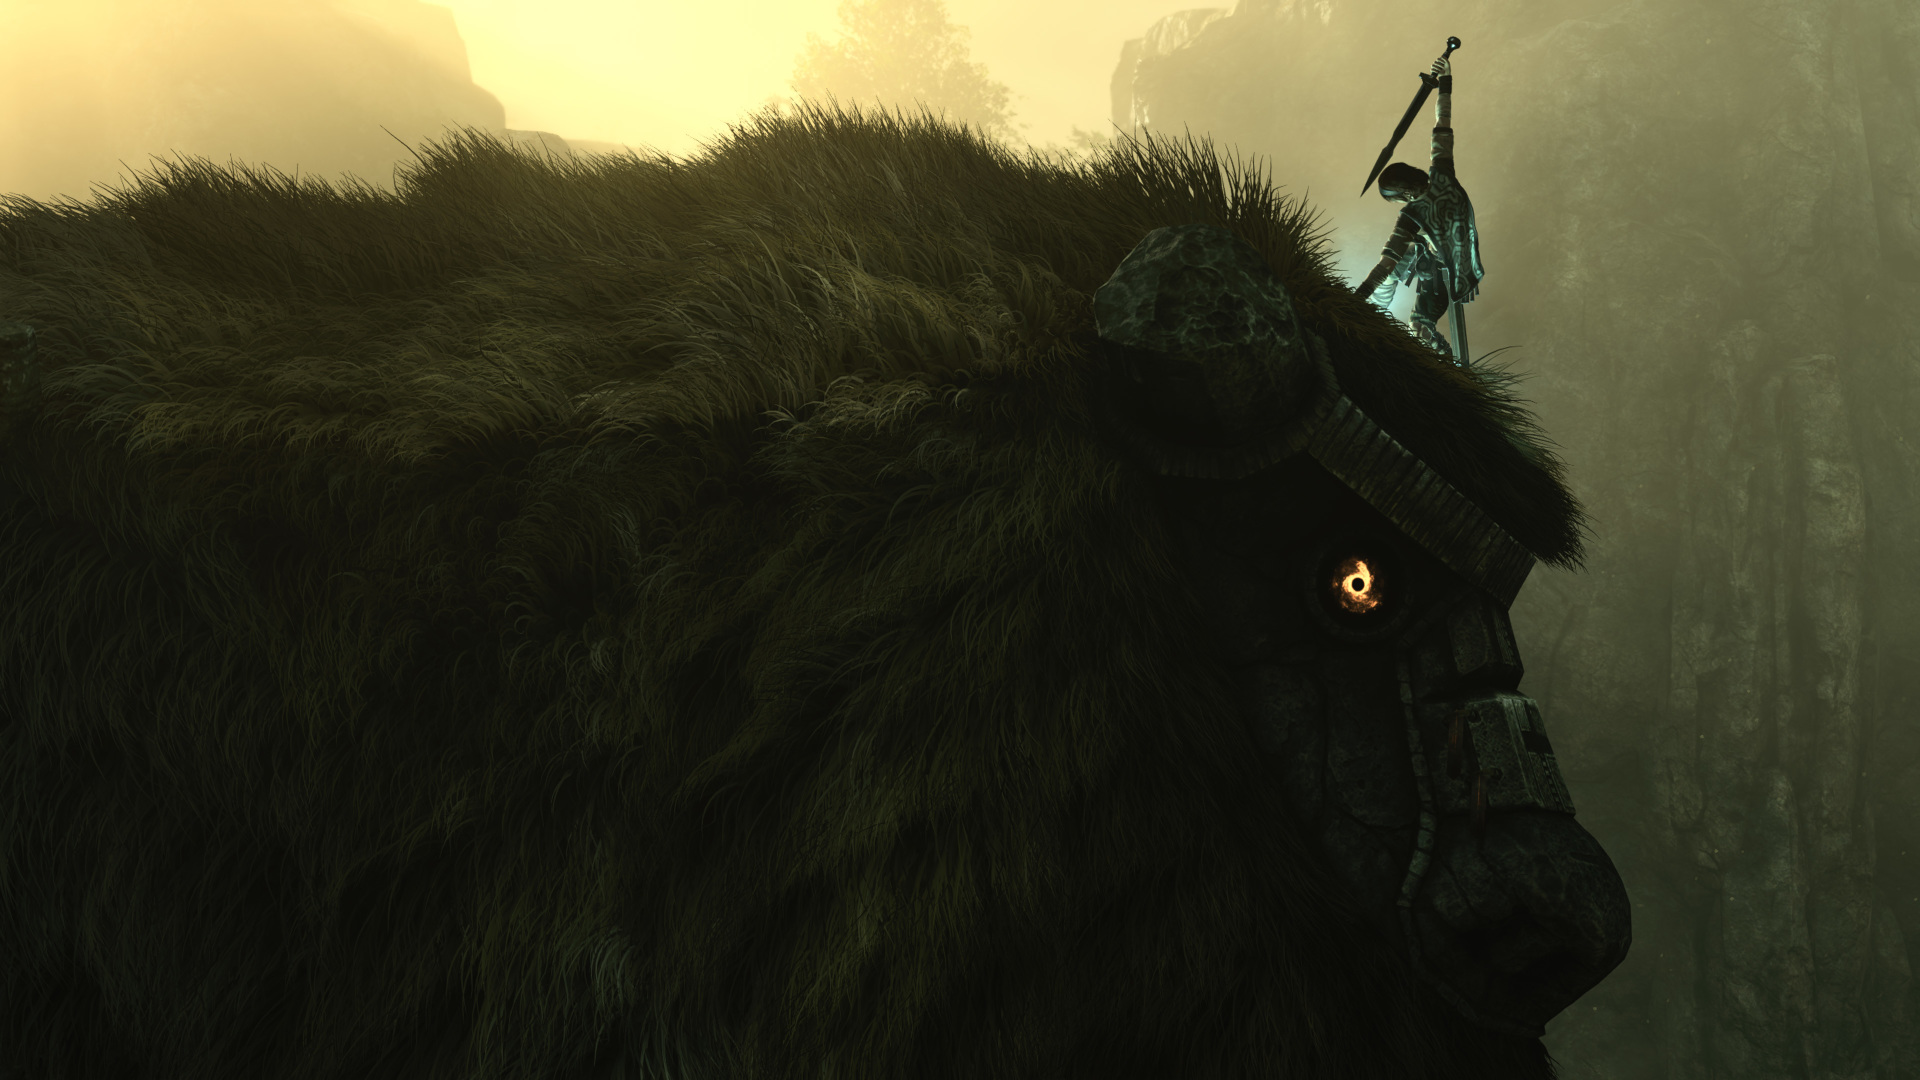 Shadow of the colossus hd 4k wallpaper - Shadow of the colossus iphone wallpaper ...